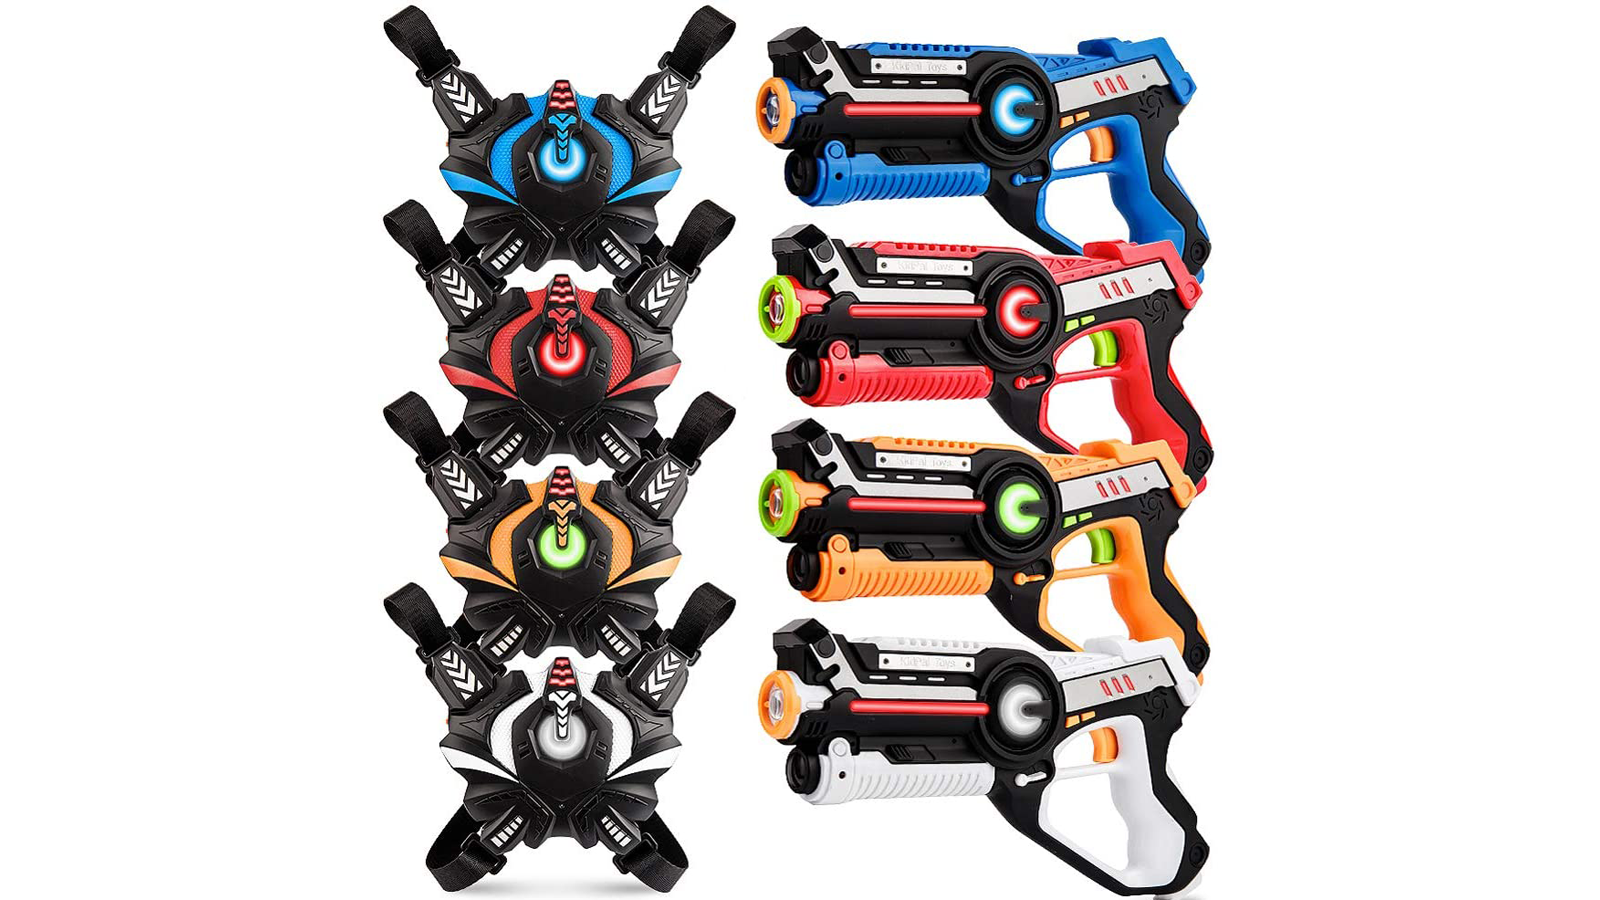 Four colorful laser tag guns and vests